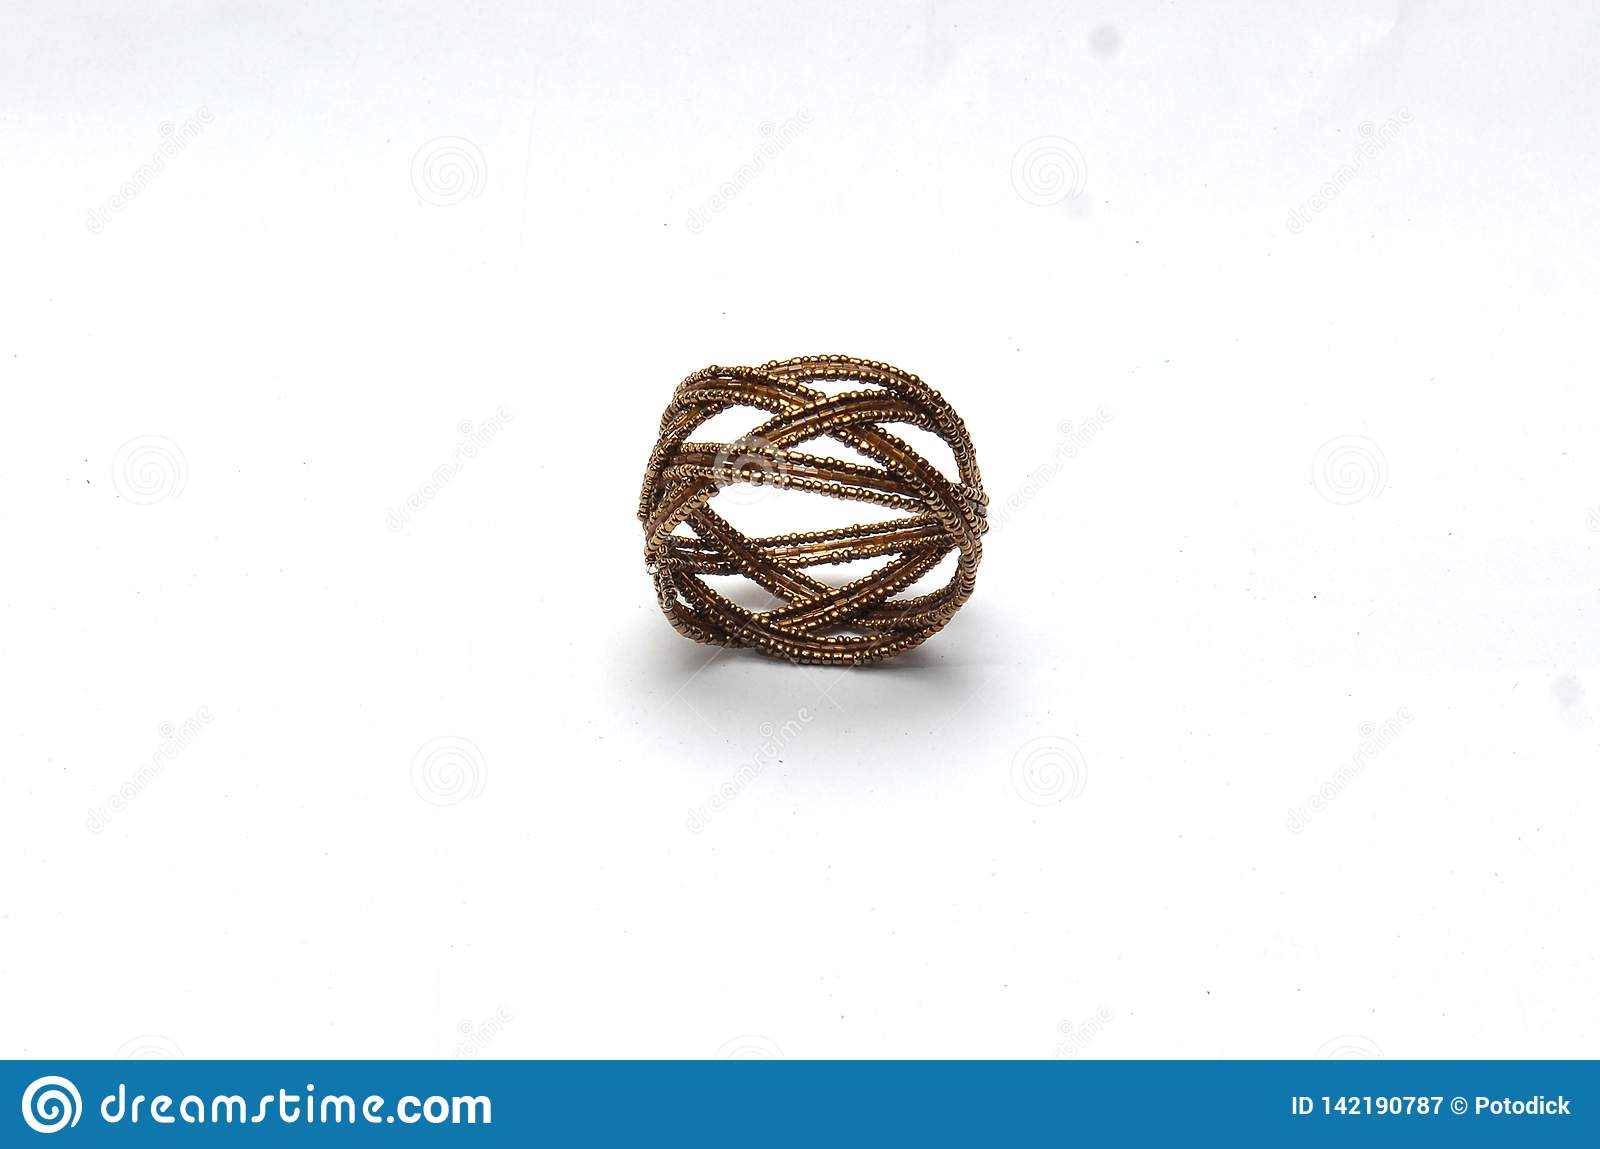 Plastic rings and bracelets in the chain of dark brown